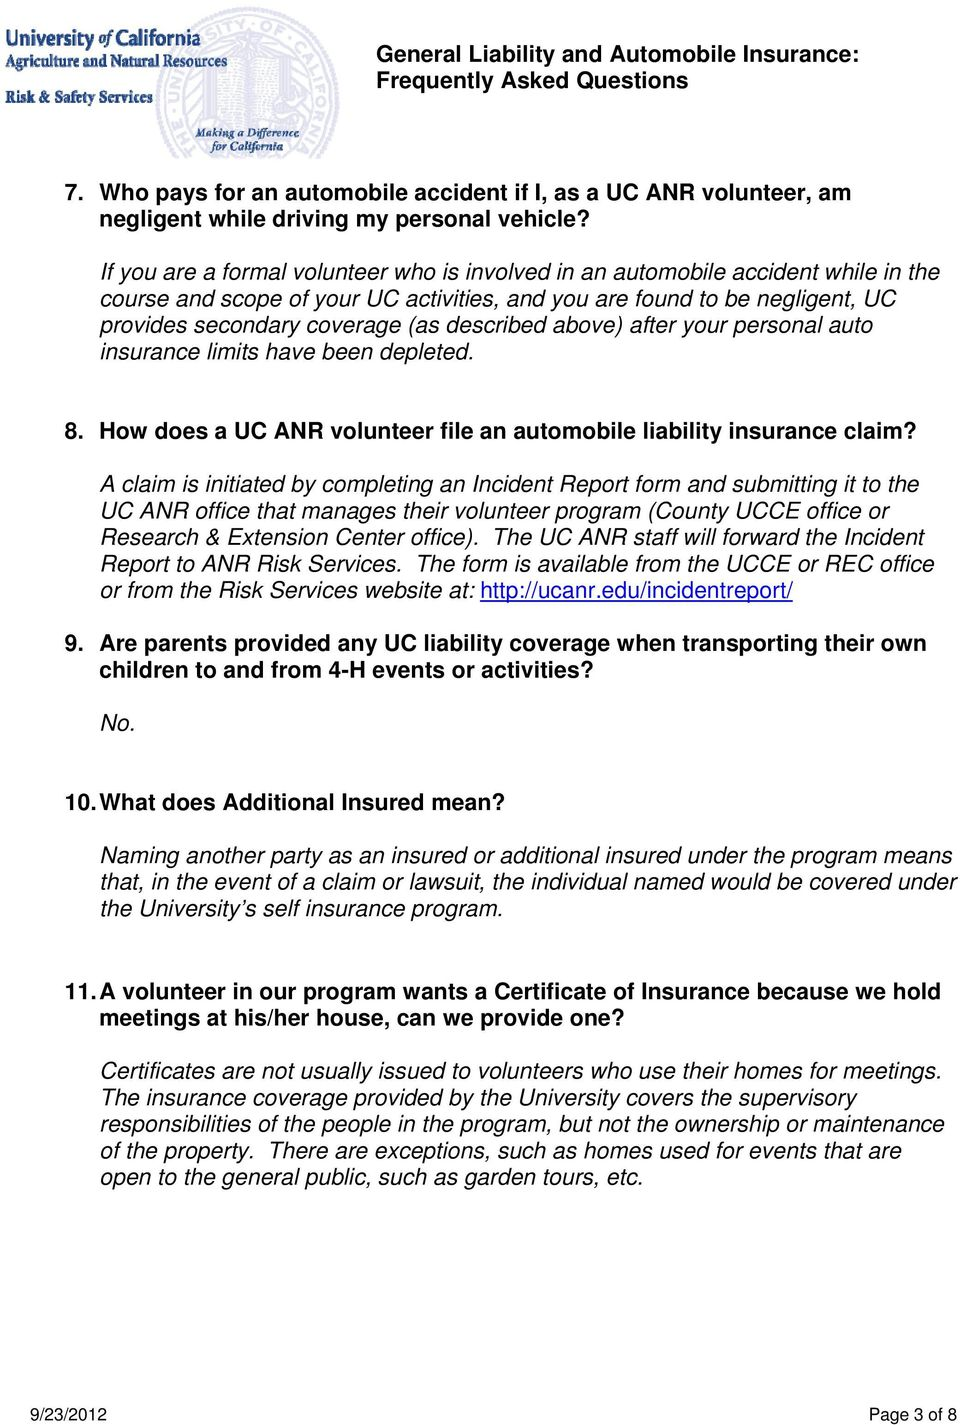 described above) after your personal auto insurance limits have been depleted. 8. How does a UC ANR volunteer file an automobile liability insurance claim?